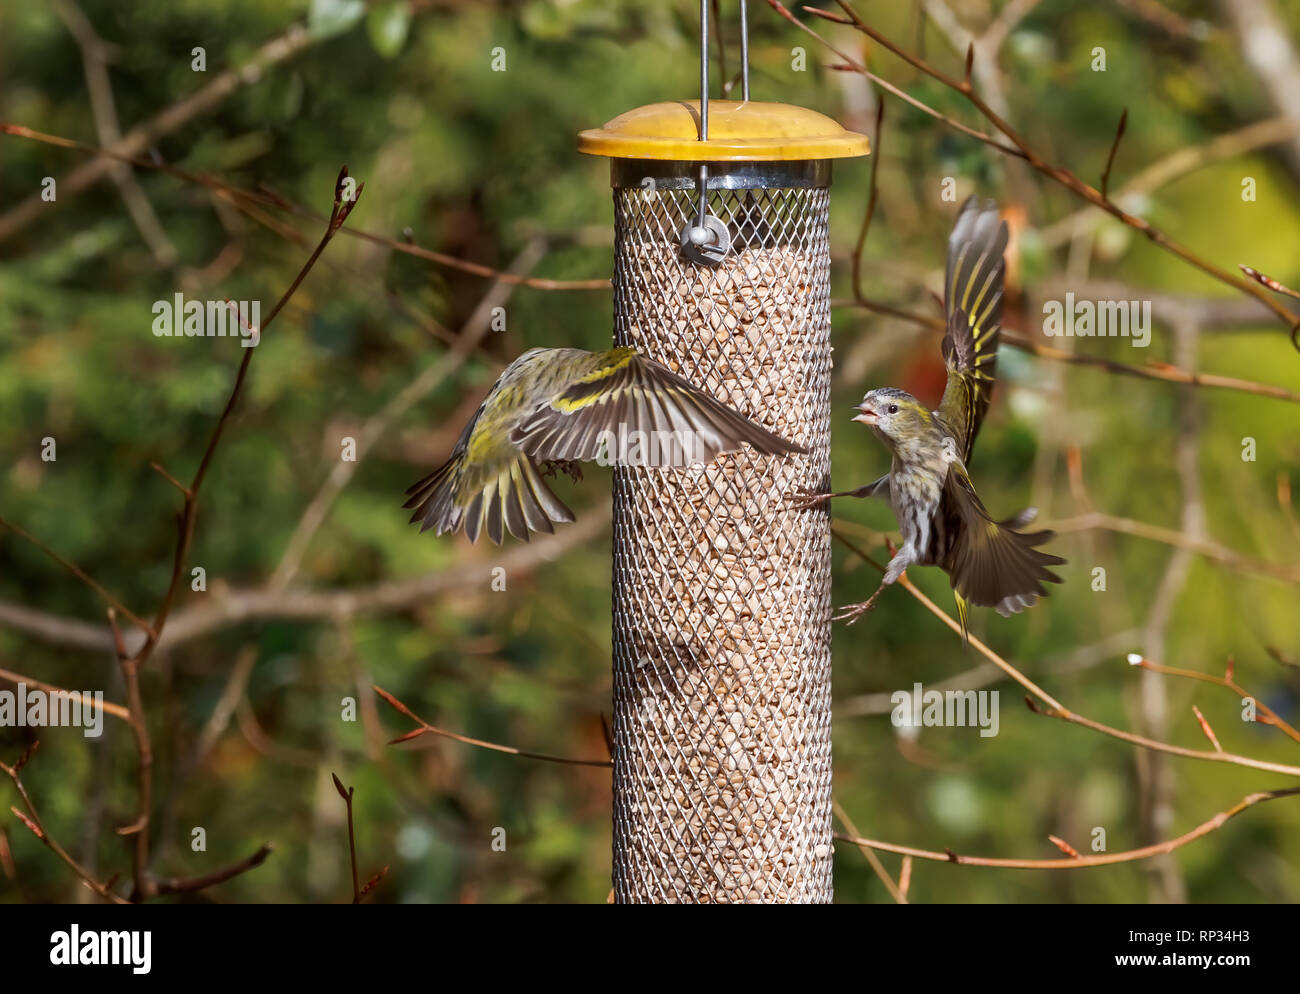 Siskins (Carduelis spinus, common siskin, Eurasian siskin) in flight squabbling at a bird feeder in a garden in Surrey, south-east England, UK in wint - Stock Image